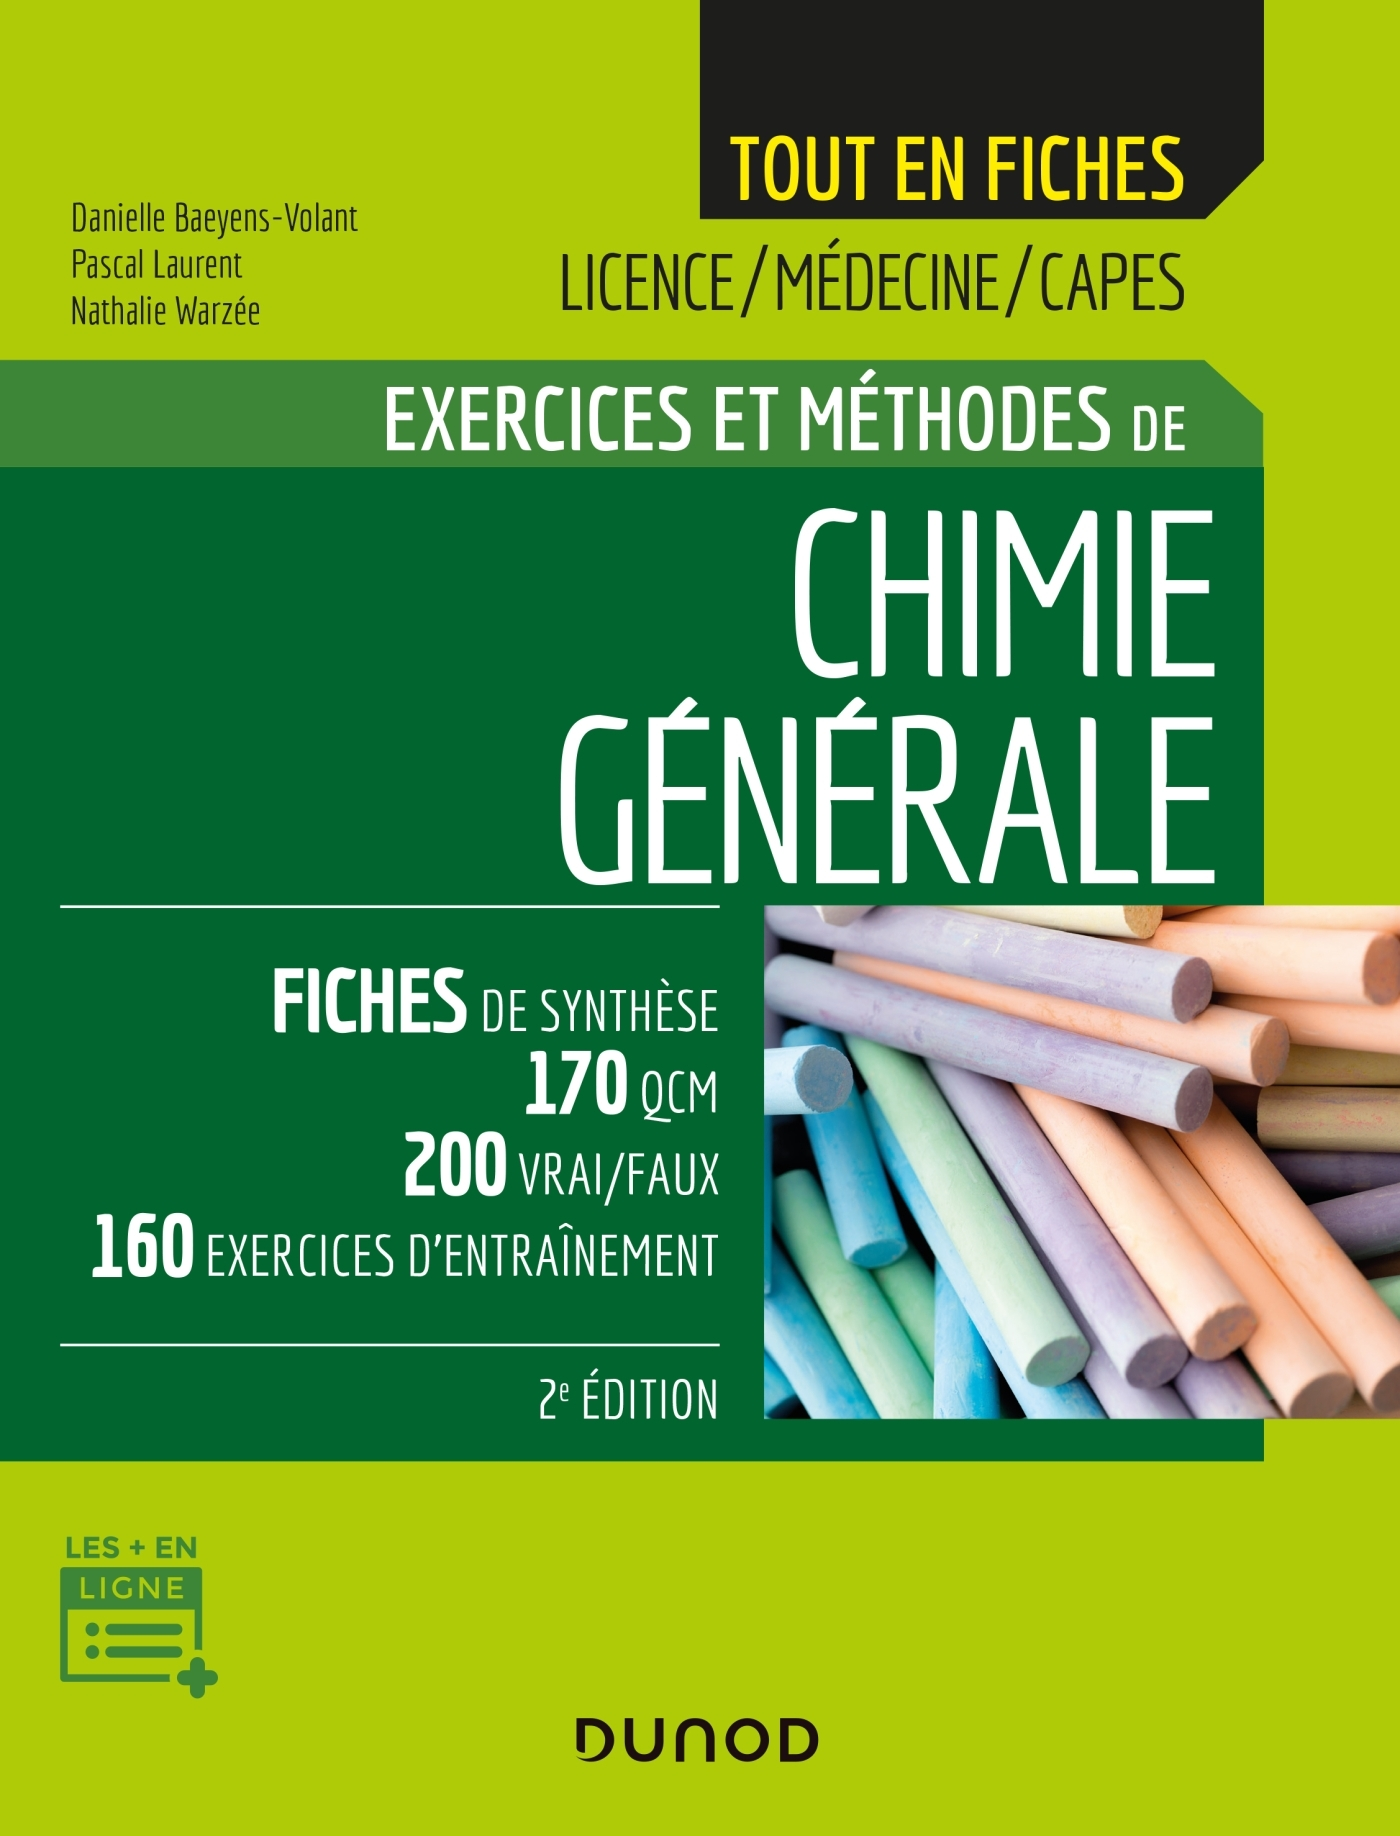 CHIMIE GENERALE - 2E ED. - EXERCICES ET METHODES